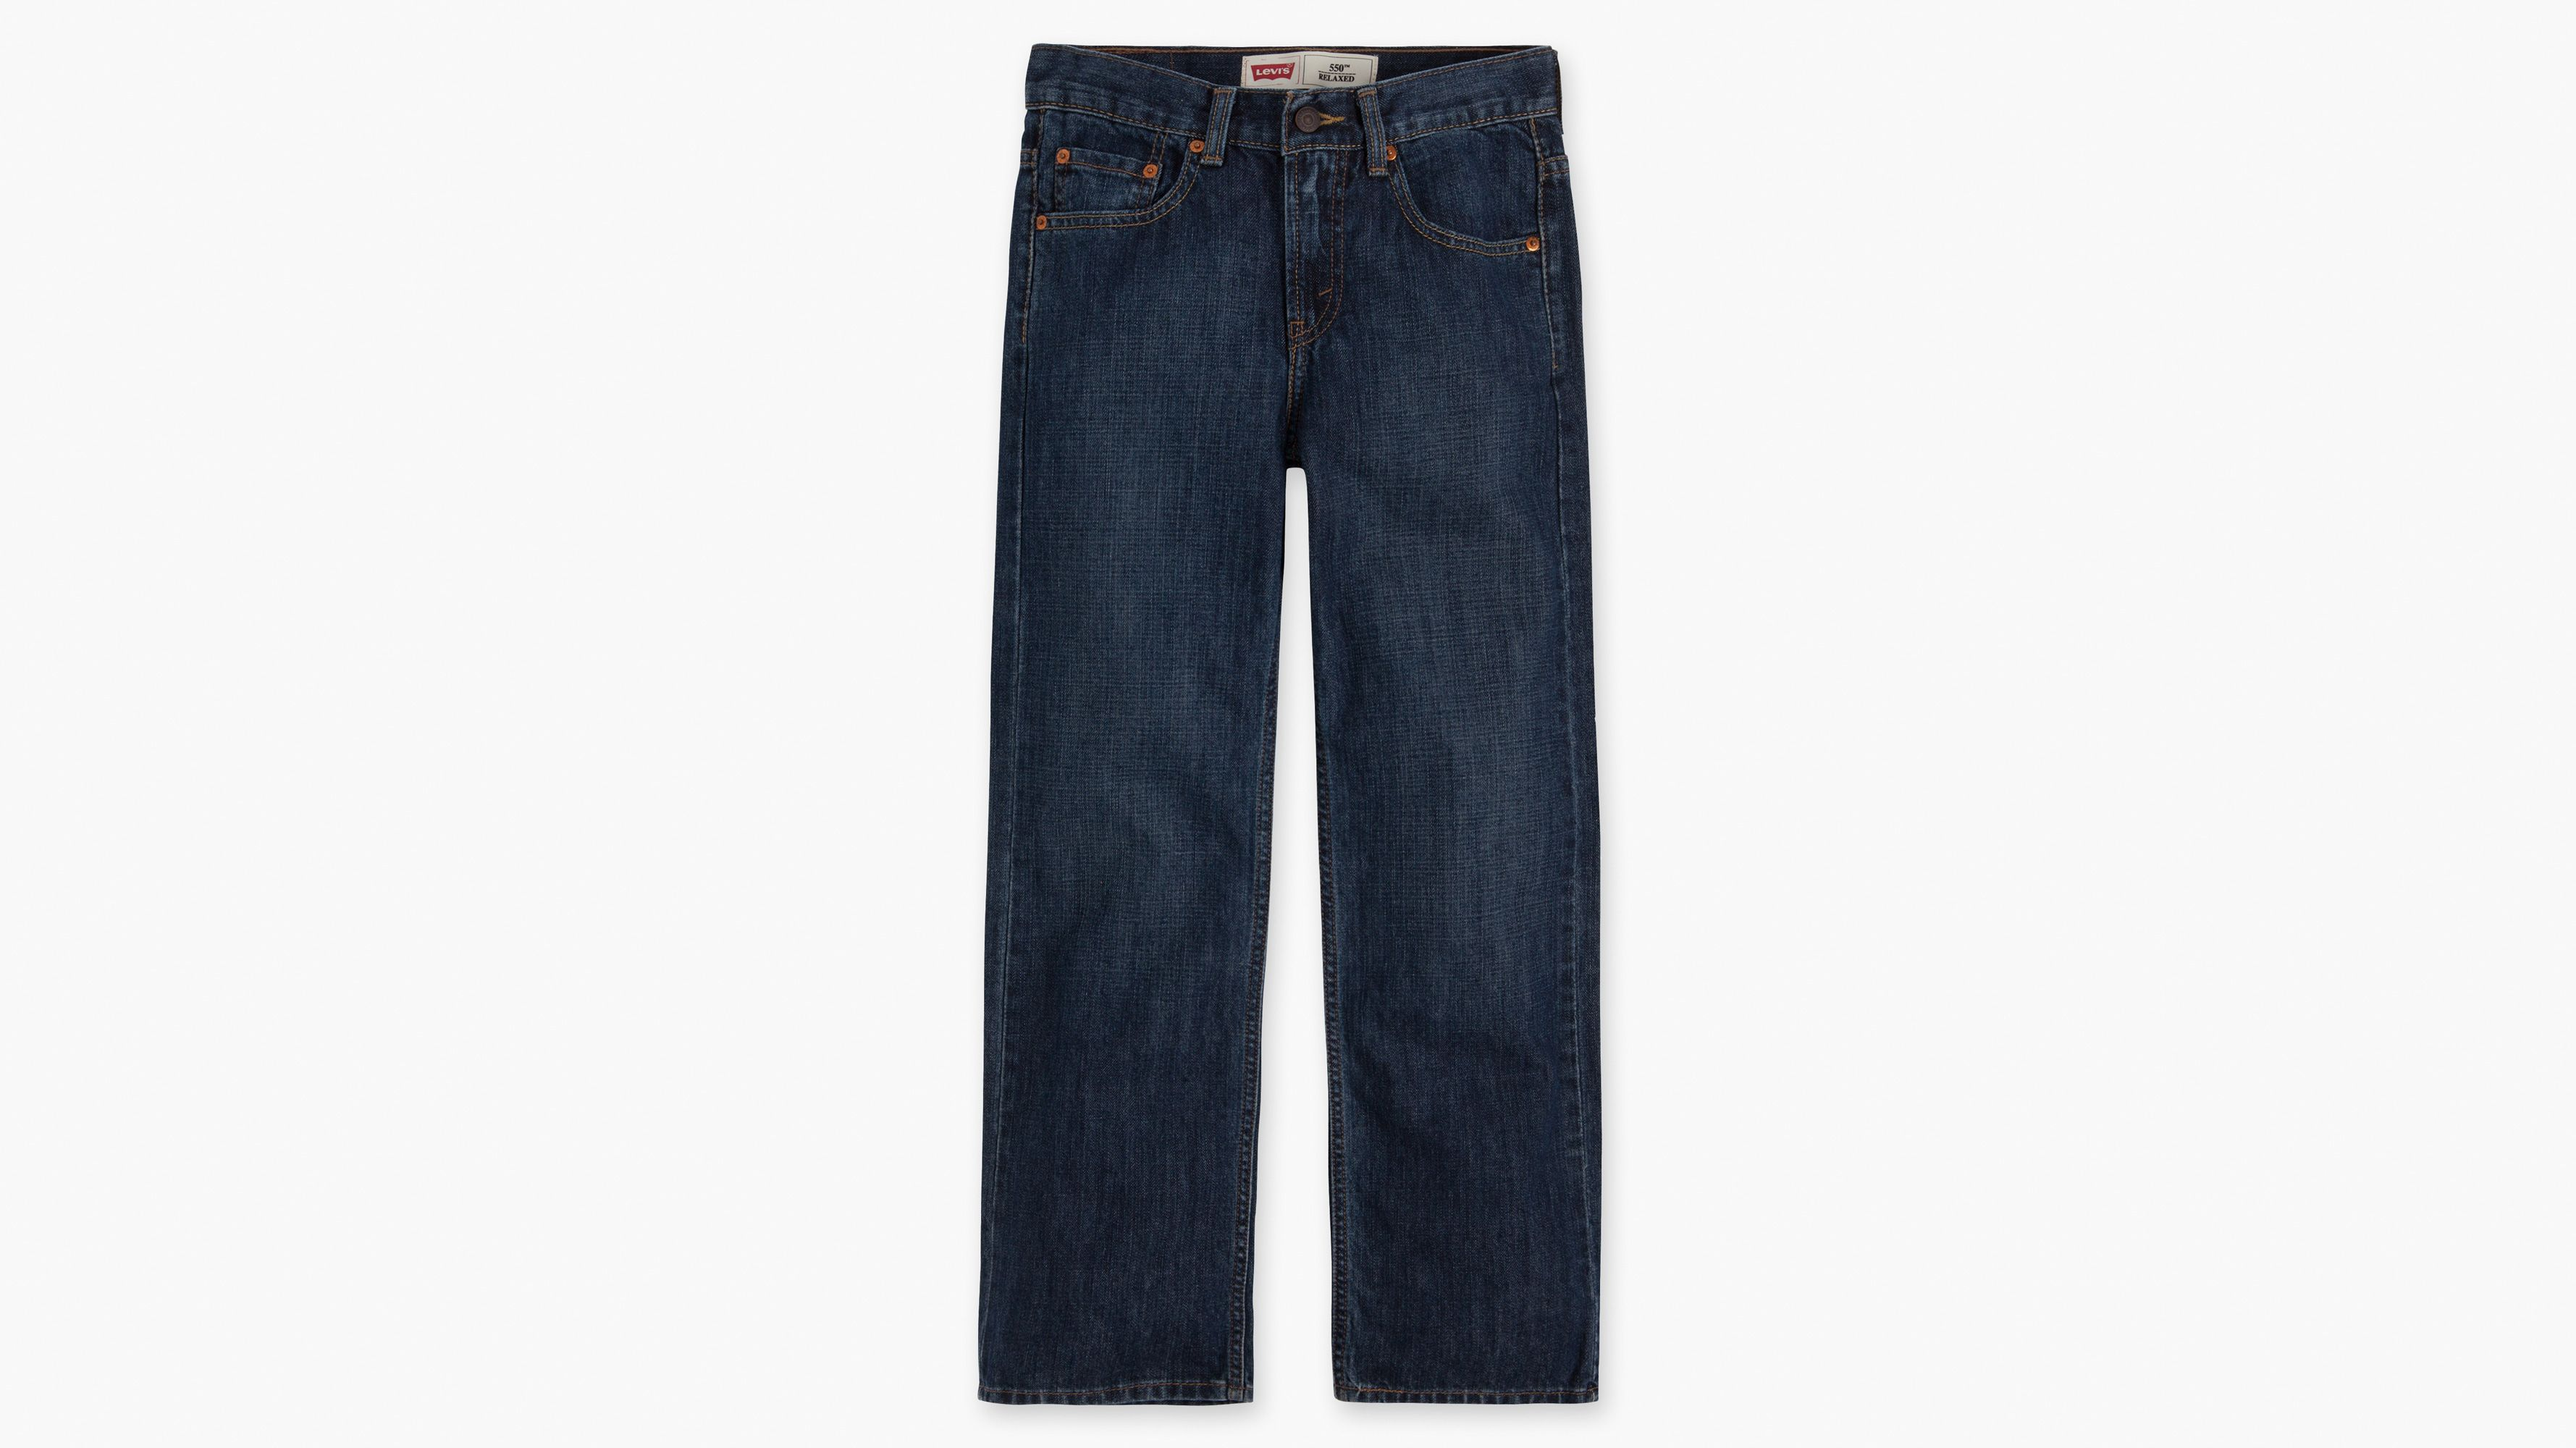 Boys (8-20) 550™ Relaxed Fit Jeans - Dark Crosshatch